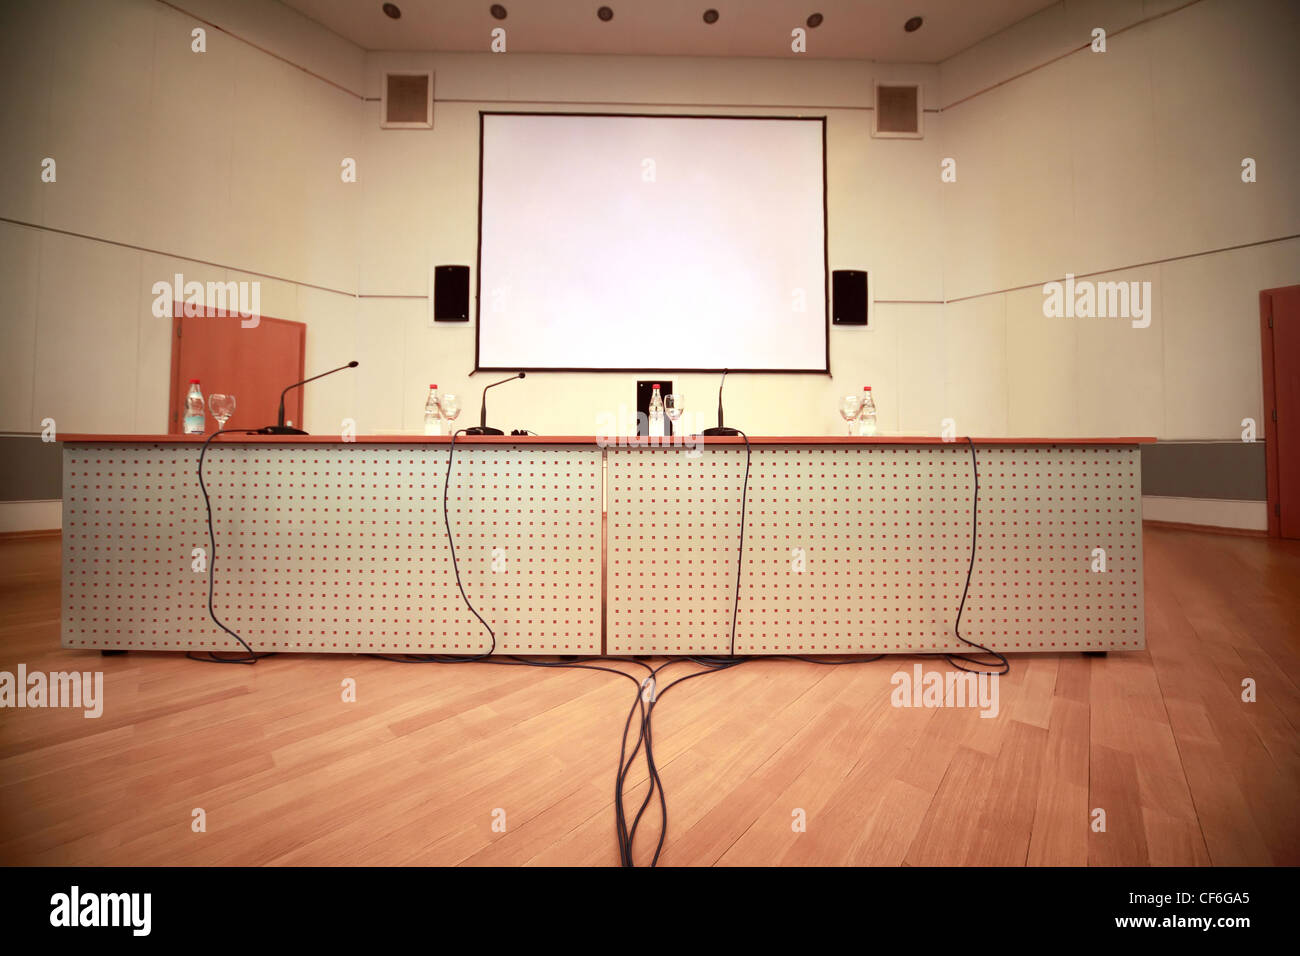 Registration of afloor, walls and table with microphones in conference room - Stock Image